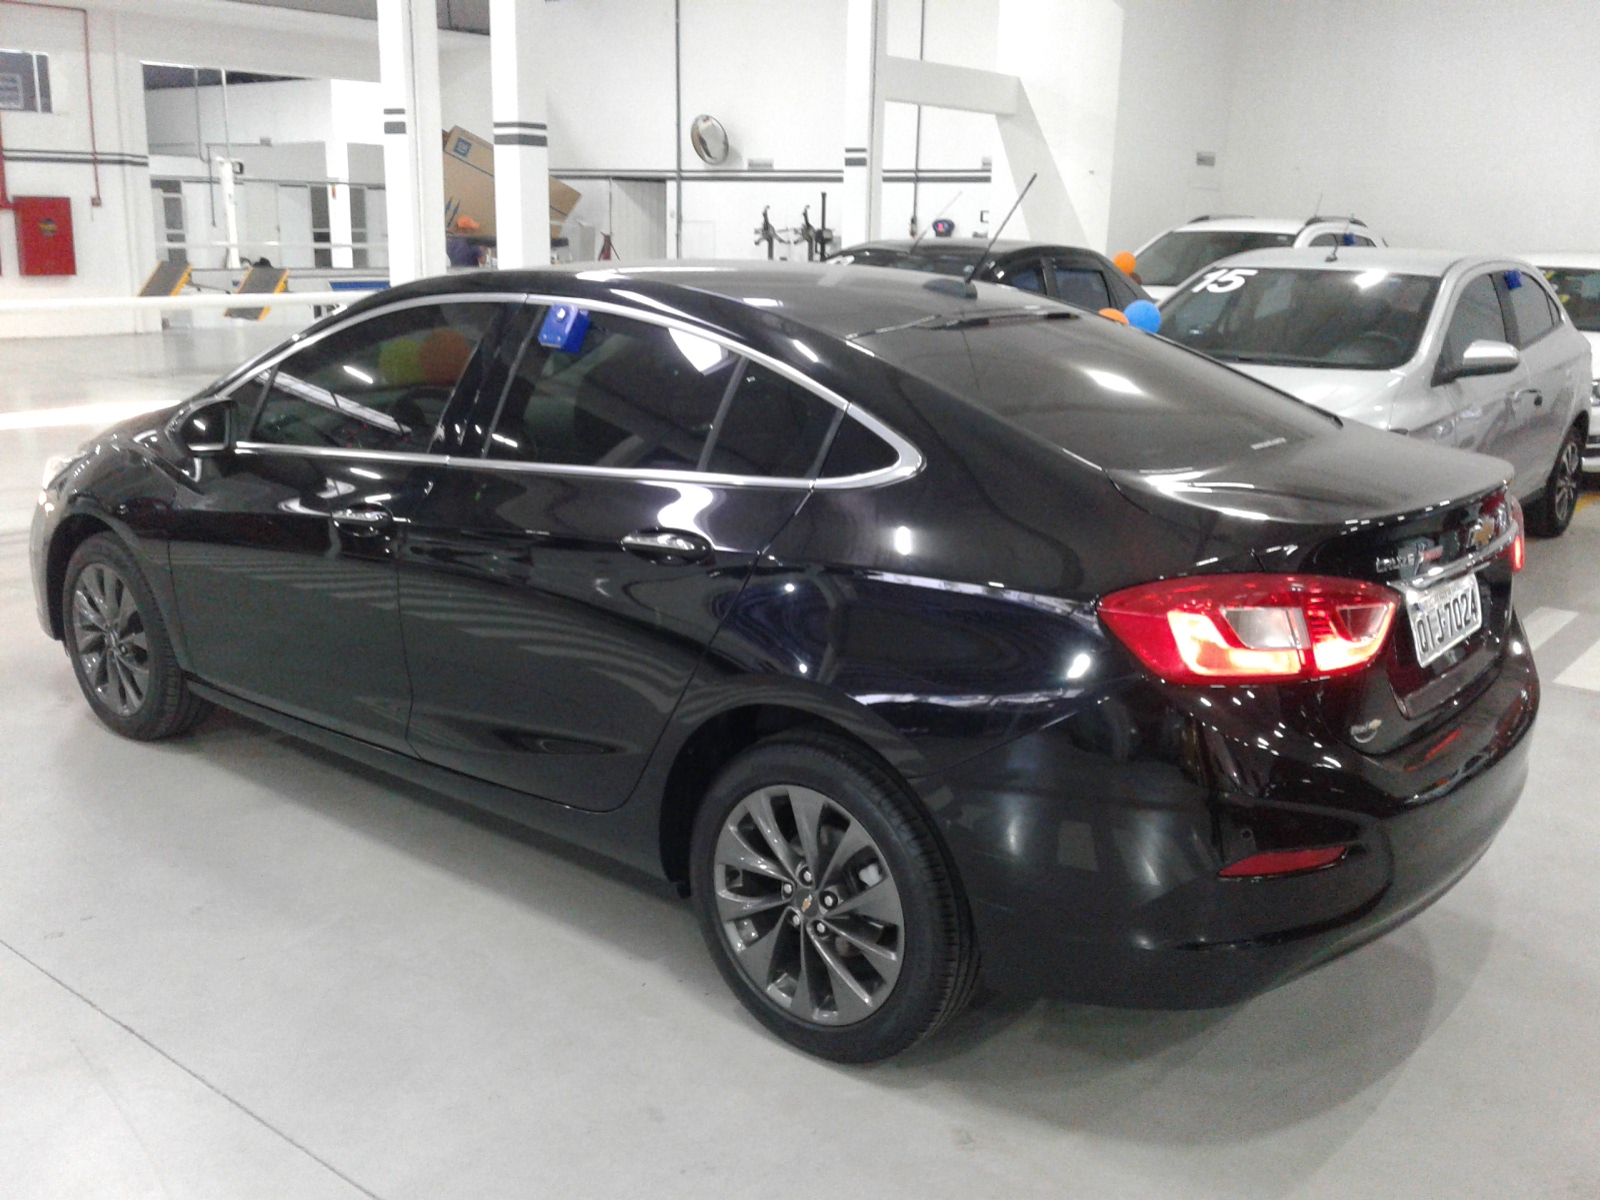 CHEVROLET CRUZE LTZ NB AT 1.4 TURBO 2017